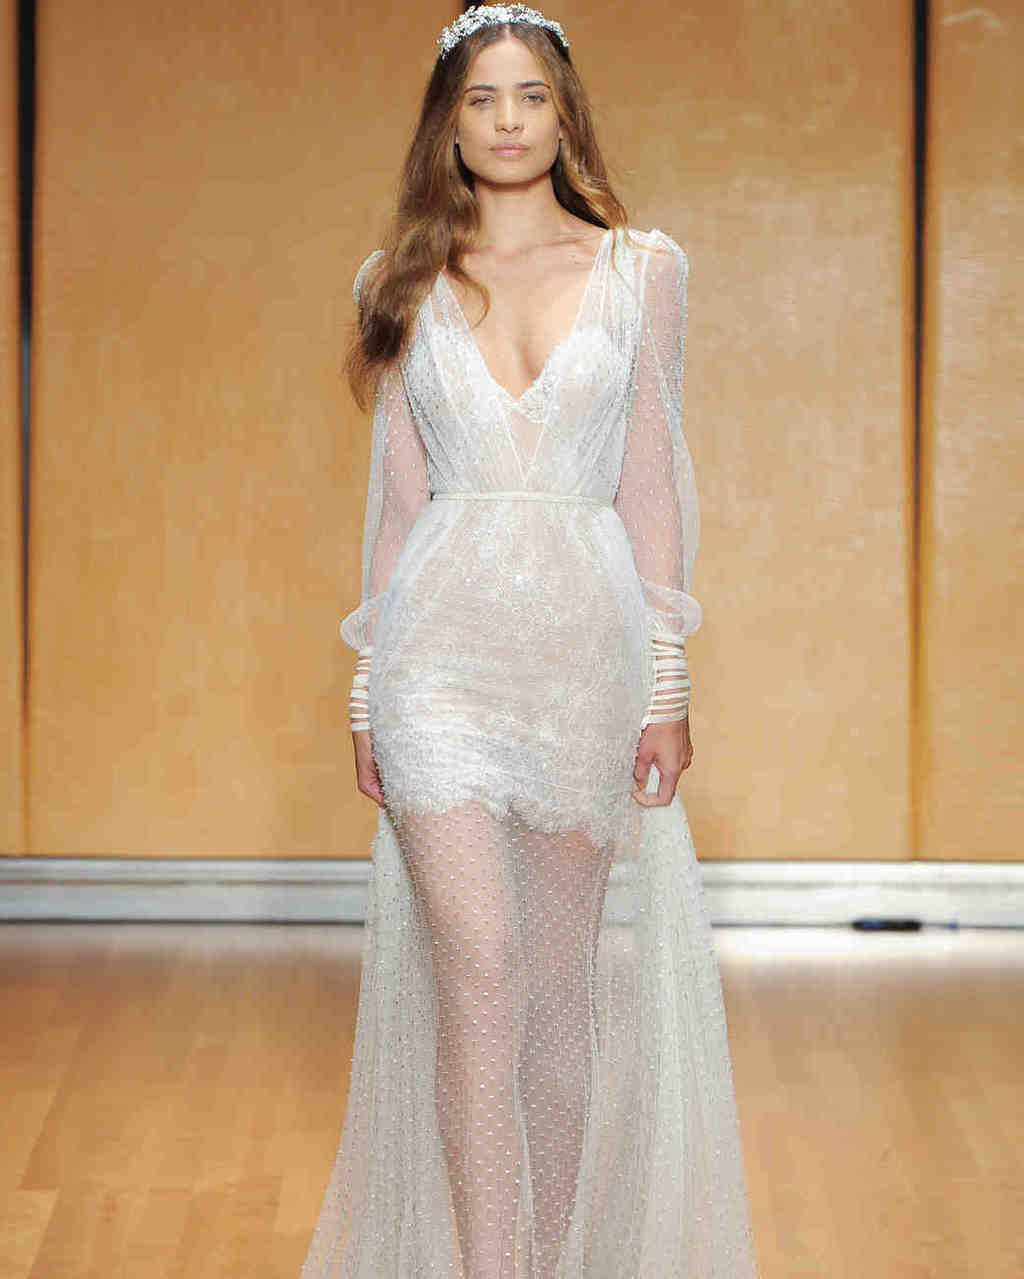 inbal-dror-wedding-dress-fall2017-6203351-016_vert